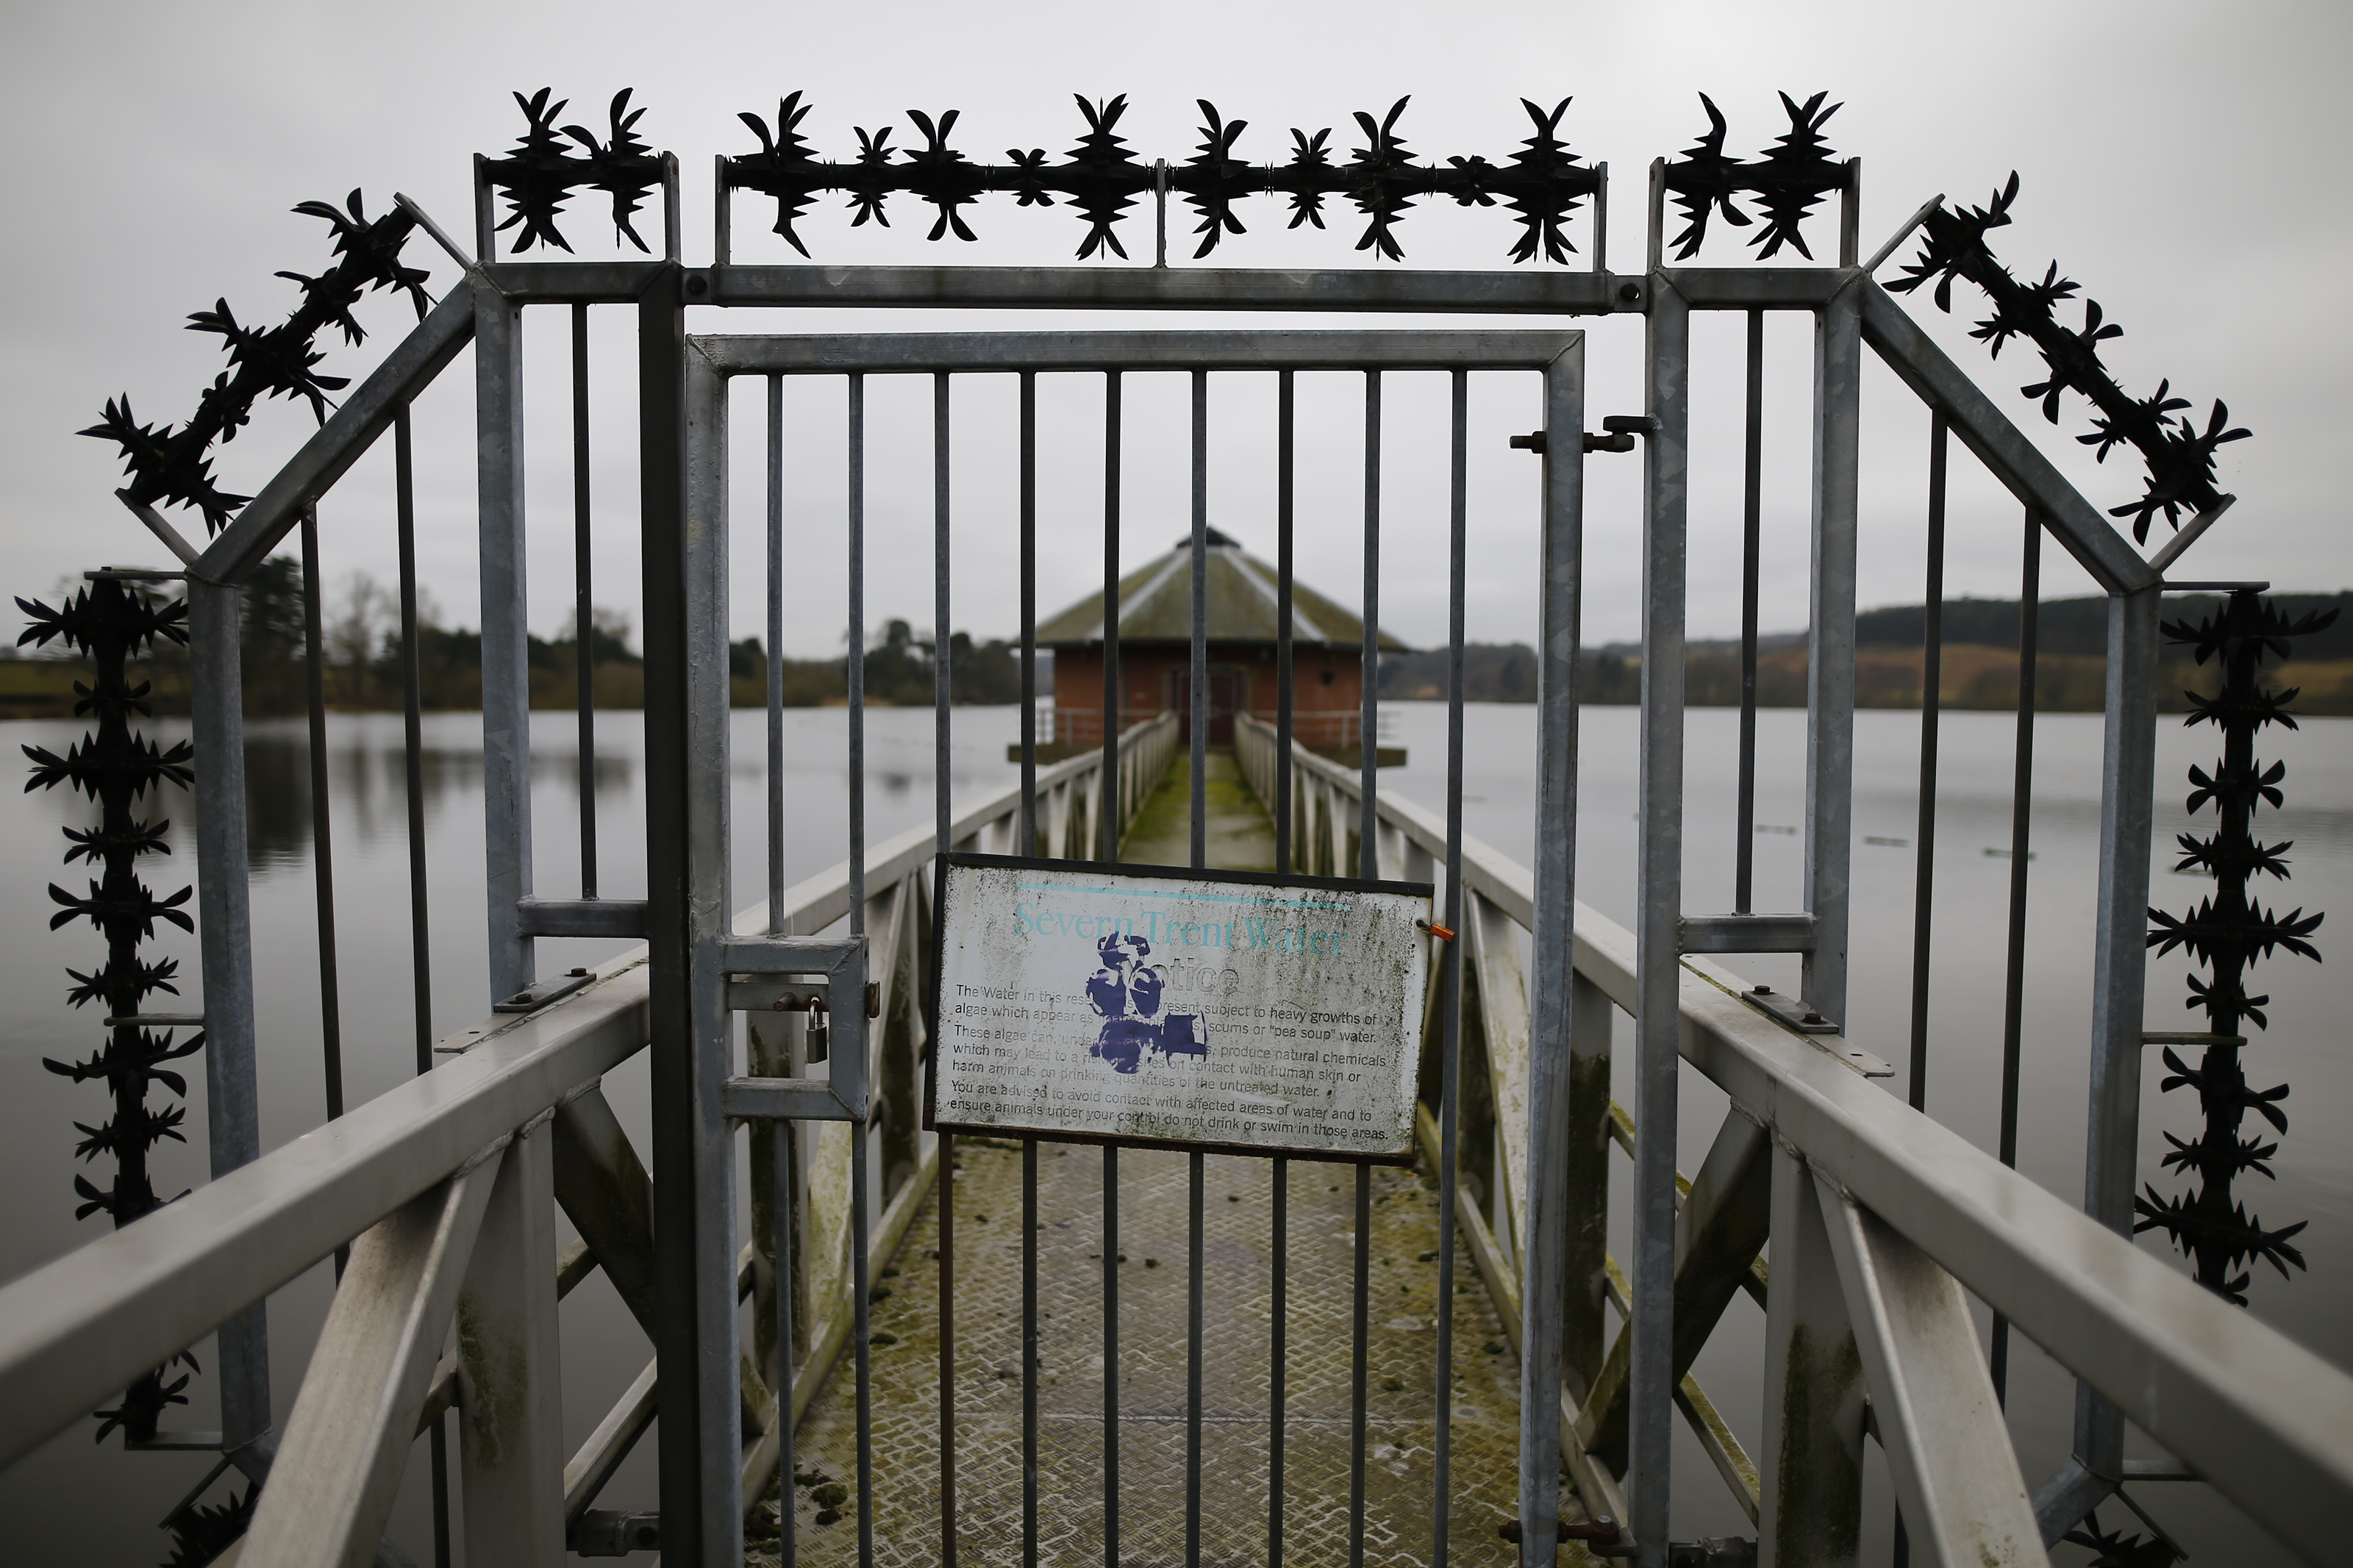 A sign hangs on a gate at Severn Trent Water's Cropston Reservoir, Britain March 18, 2016. REUTERS/Darren Staples